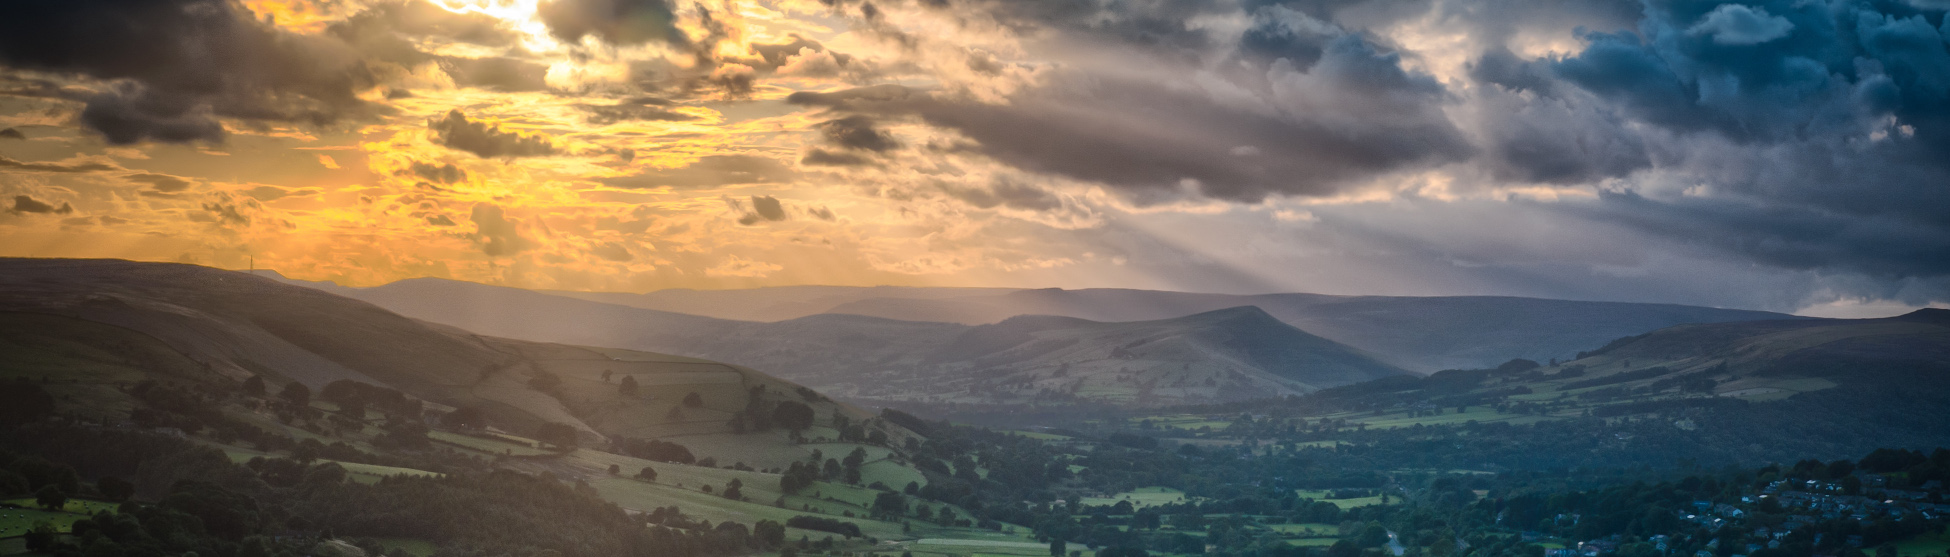 The Geology and Landscapes around Castleton, Peak District (MTA members)